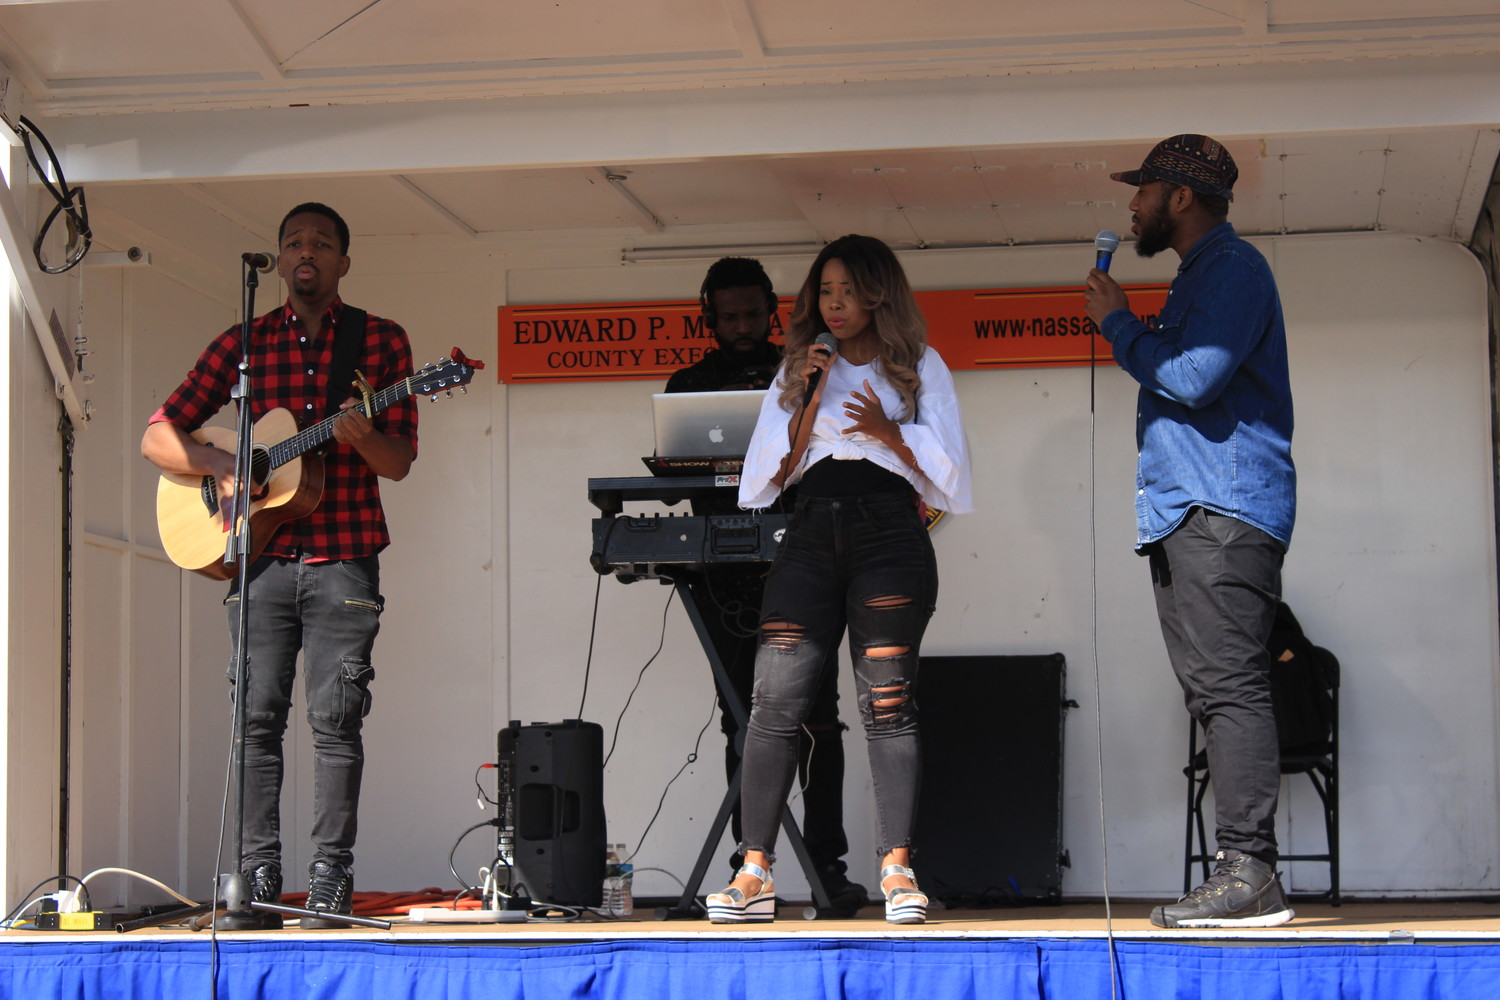 Elmont's own Written Melody performed at the Elmont Family Fun Day on Sept. 9. In front, from left are Kenyatta Blakeley, Katrina Black and Will Ferdinand. In the back is D.J. Showntell.